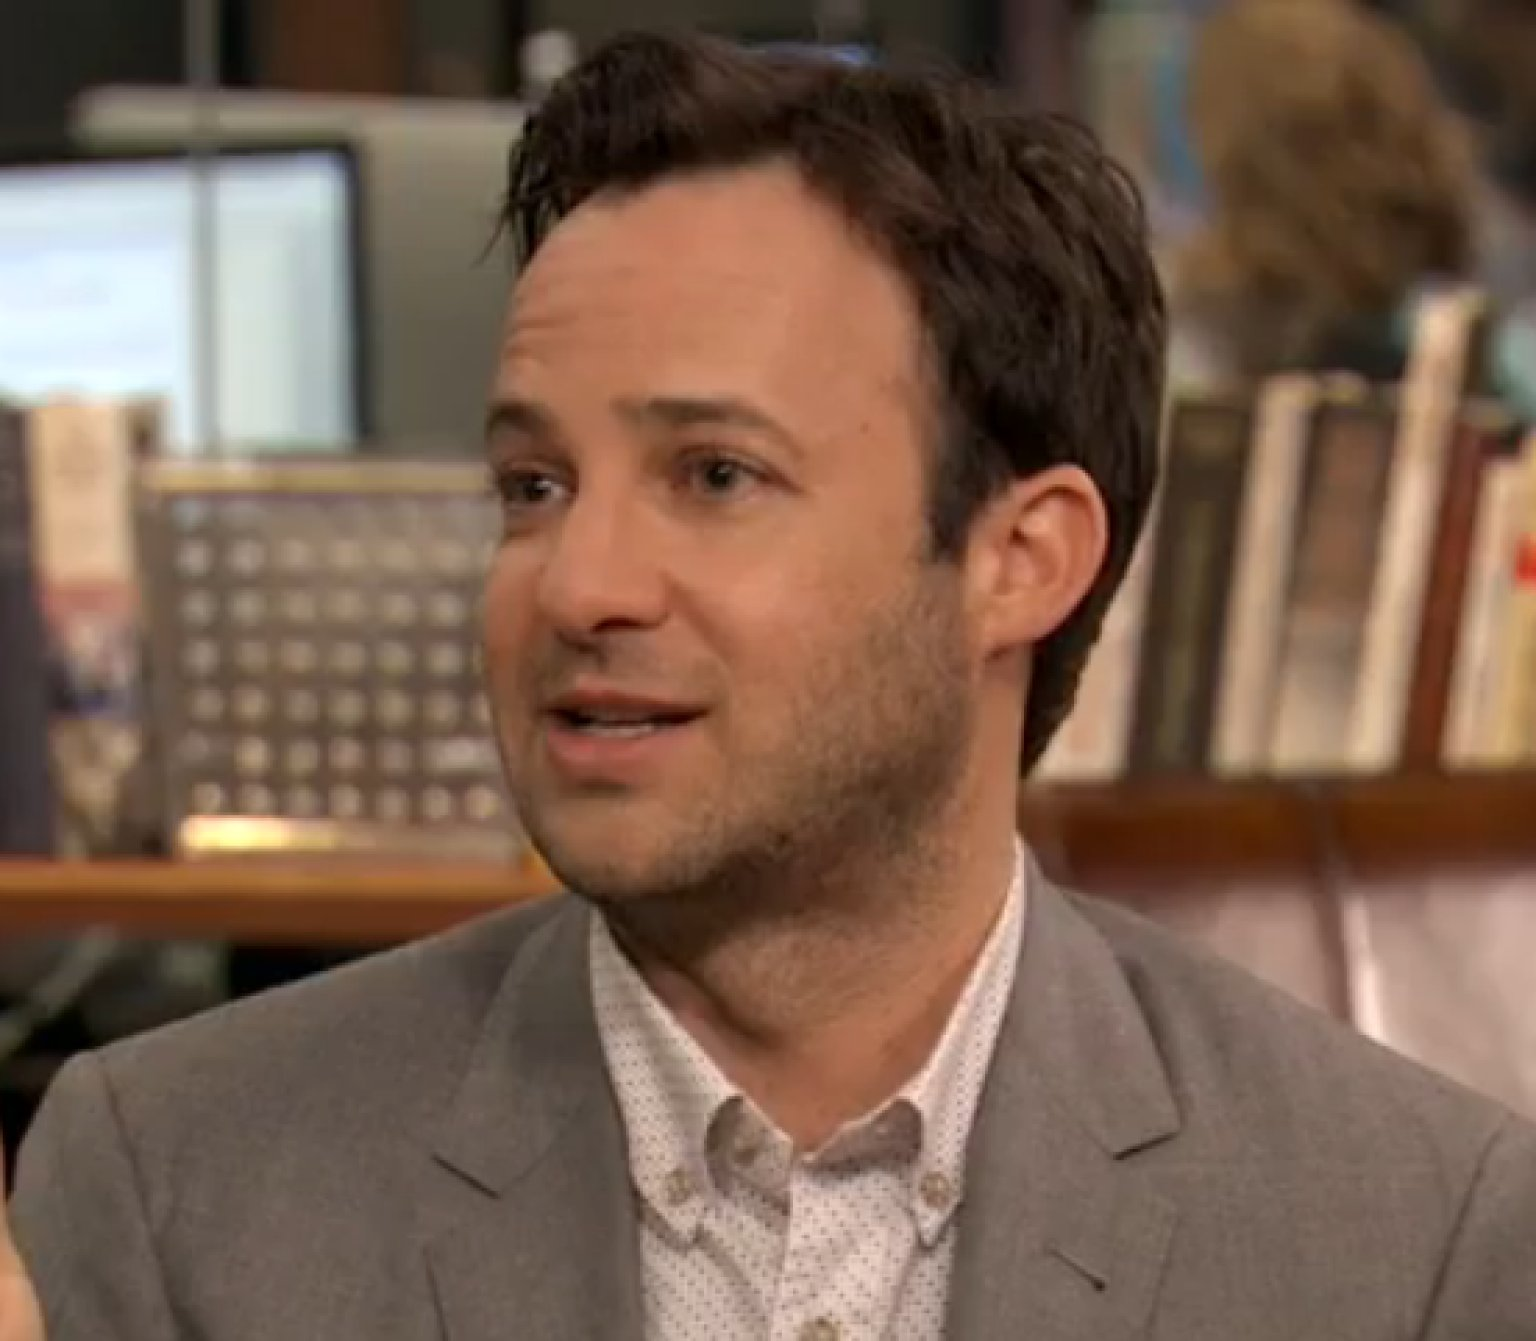 danny strong wikidanny strong director, danny strong height, danny strong instagram, danny strong, danny strong empire, danny strong wiki, danny strong buffy, danny strong galileo, danny strong imdb, danny strong wife, danny strong net worth, danny strong twitter, danny strong girlfriend, danny strong dating, danny strong fund, danny strong justified, danny strong how i met your mother, danny strong writer, danny strong nc state, danny strong and lee daniels